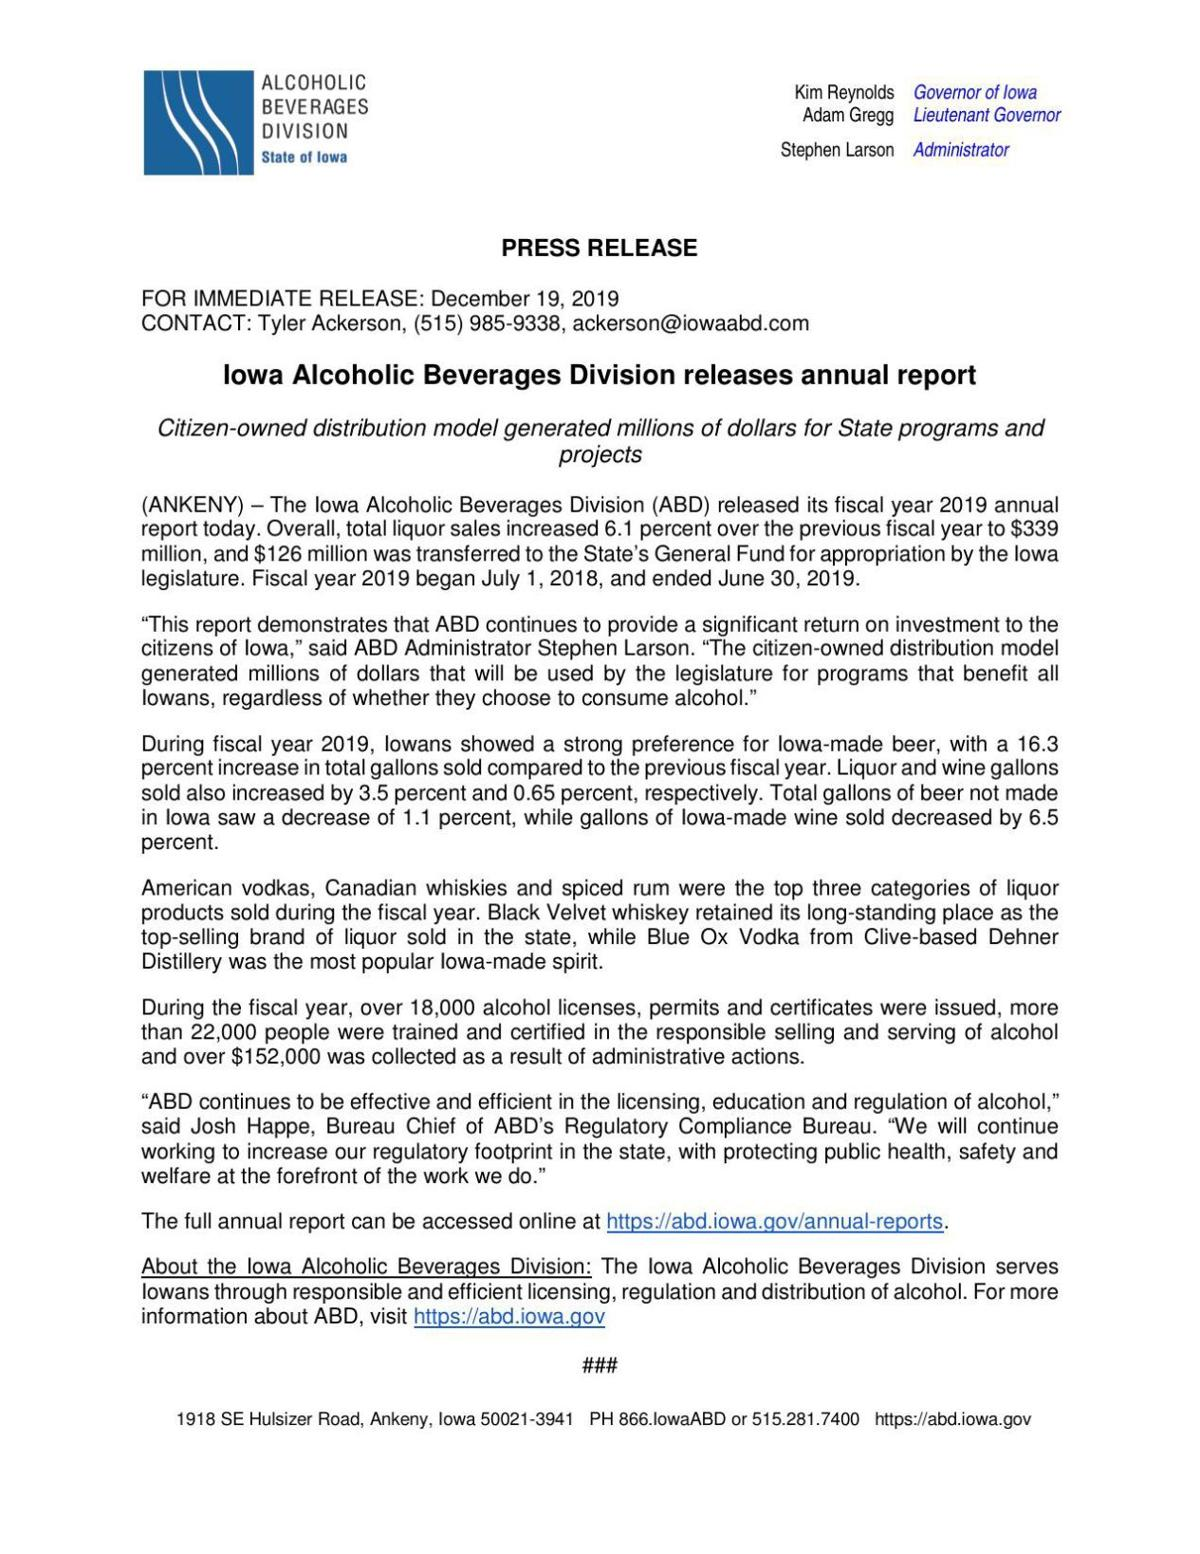 Press Release - Iowa Alcoholic Beverages Division releases annual report 12-19-19